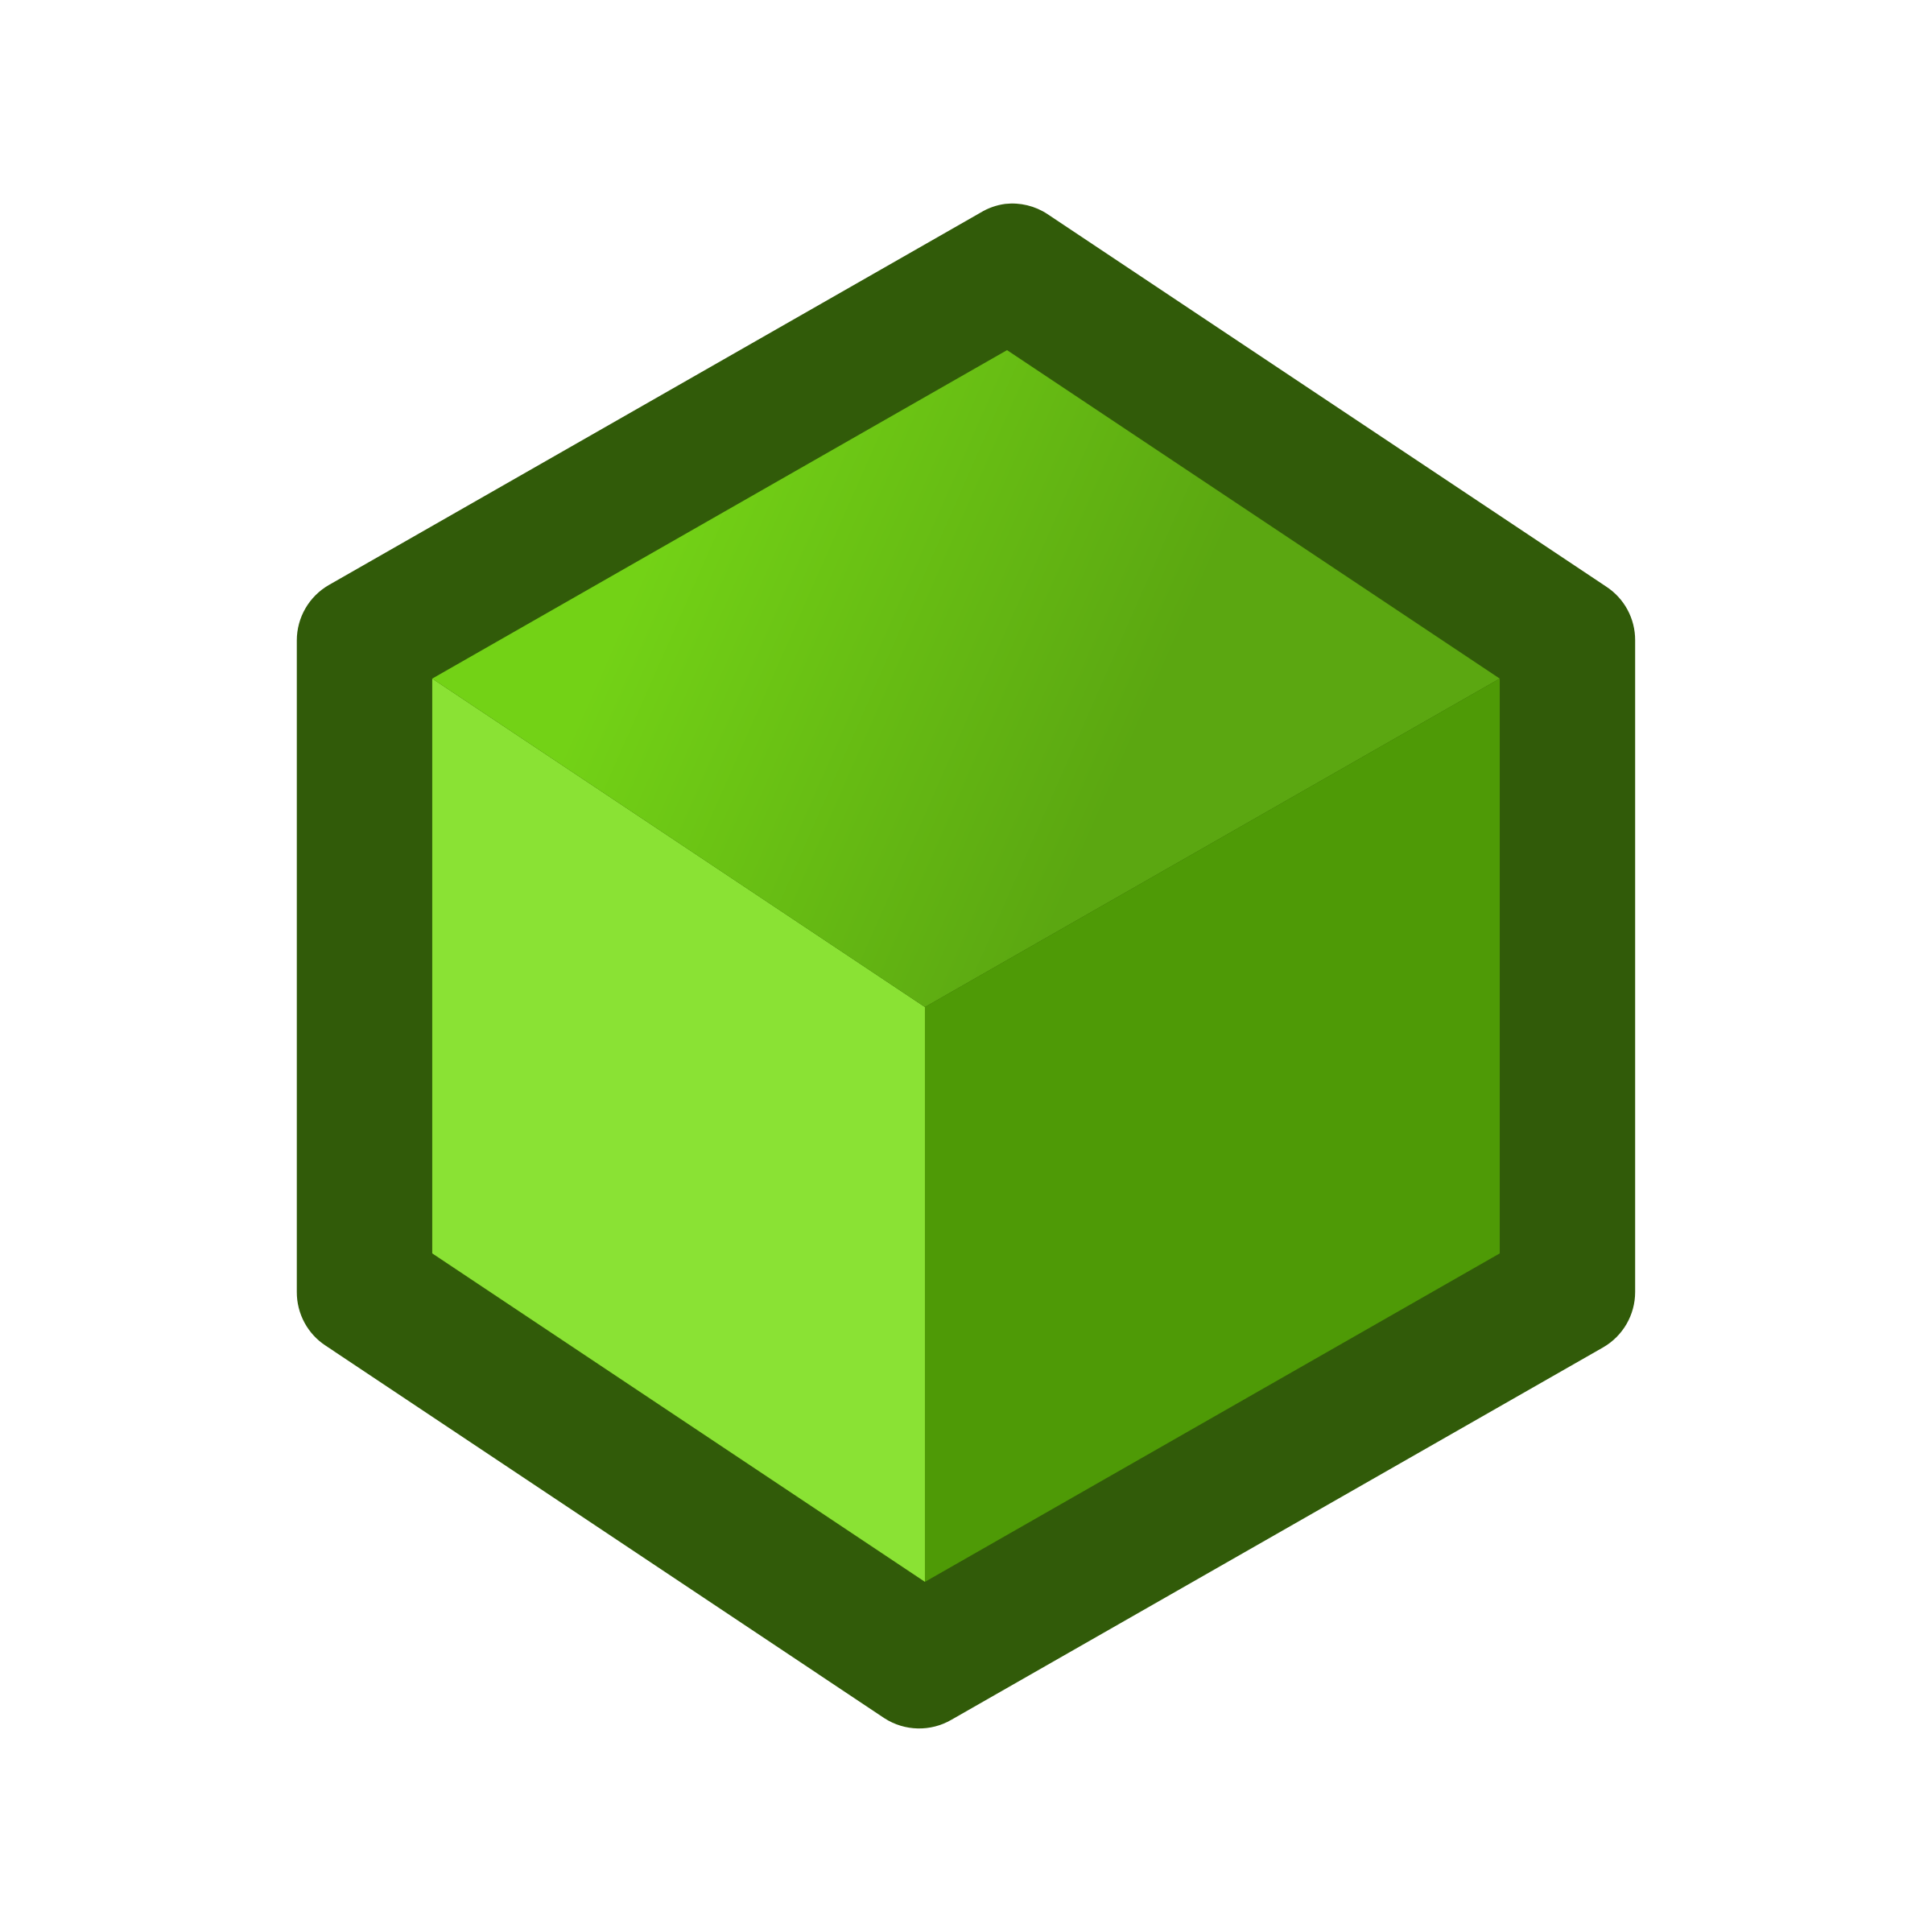 icon-cube-green by jean_victor_balin